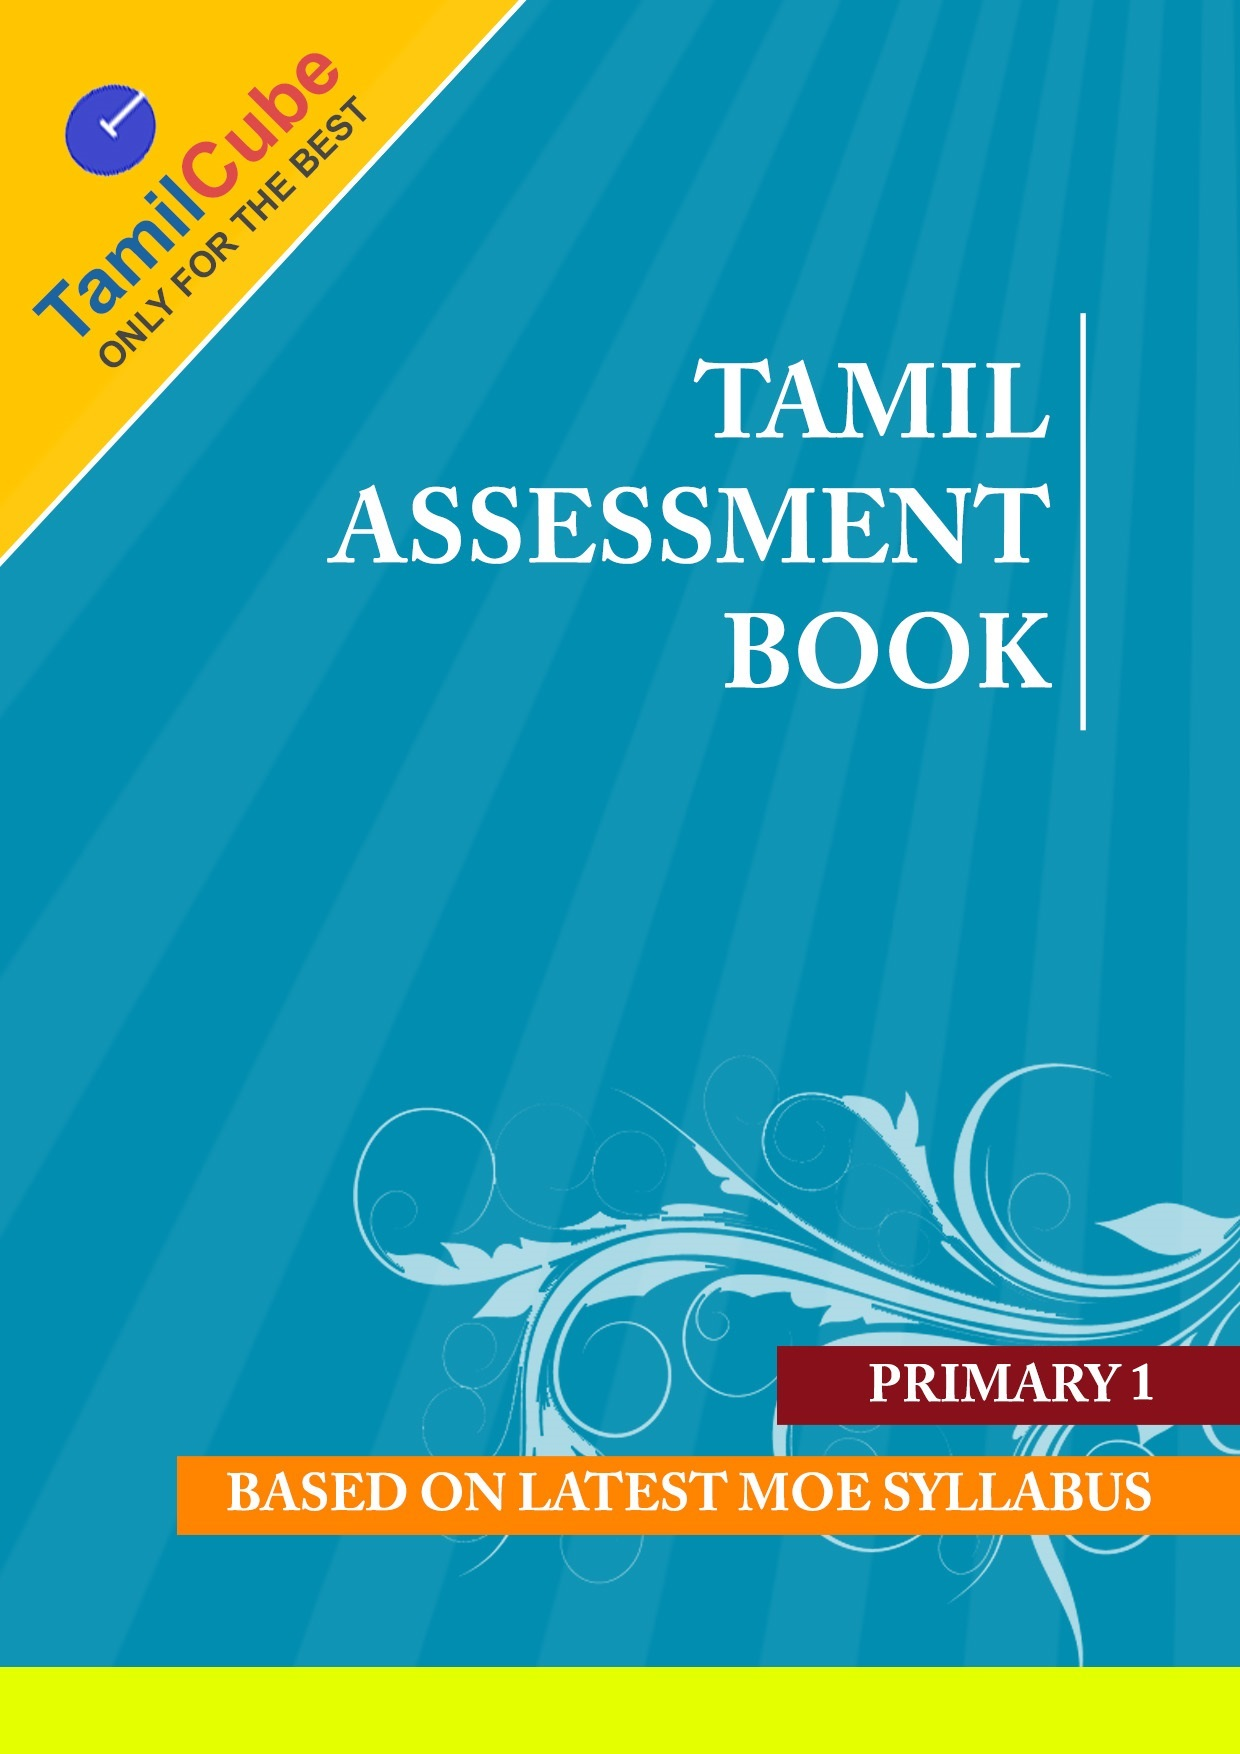 Tamilcube Star Package - Primary 1 Tamil | Tamilcube Shop